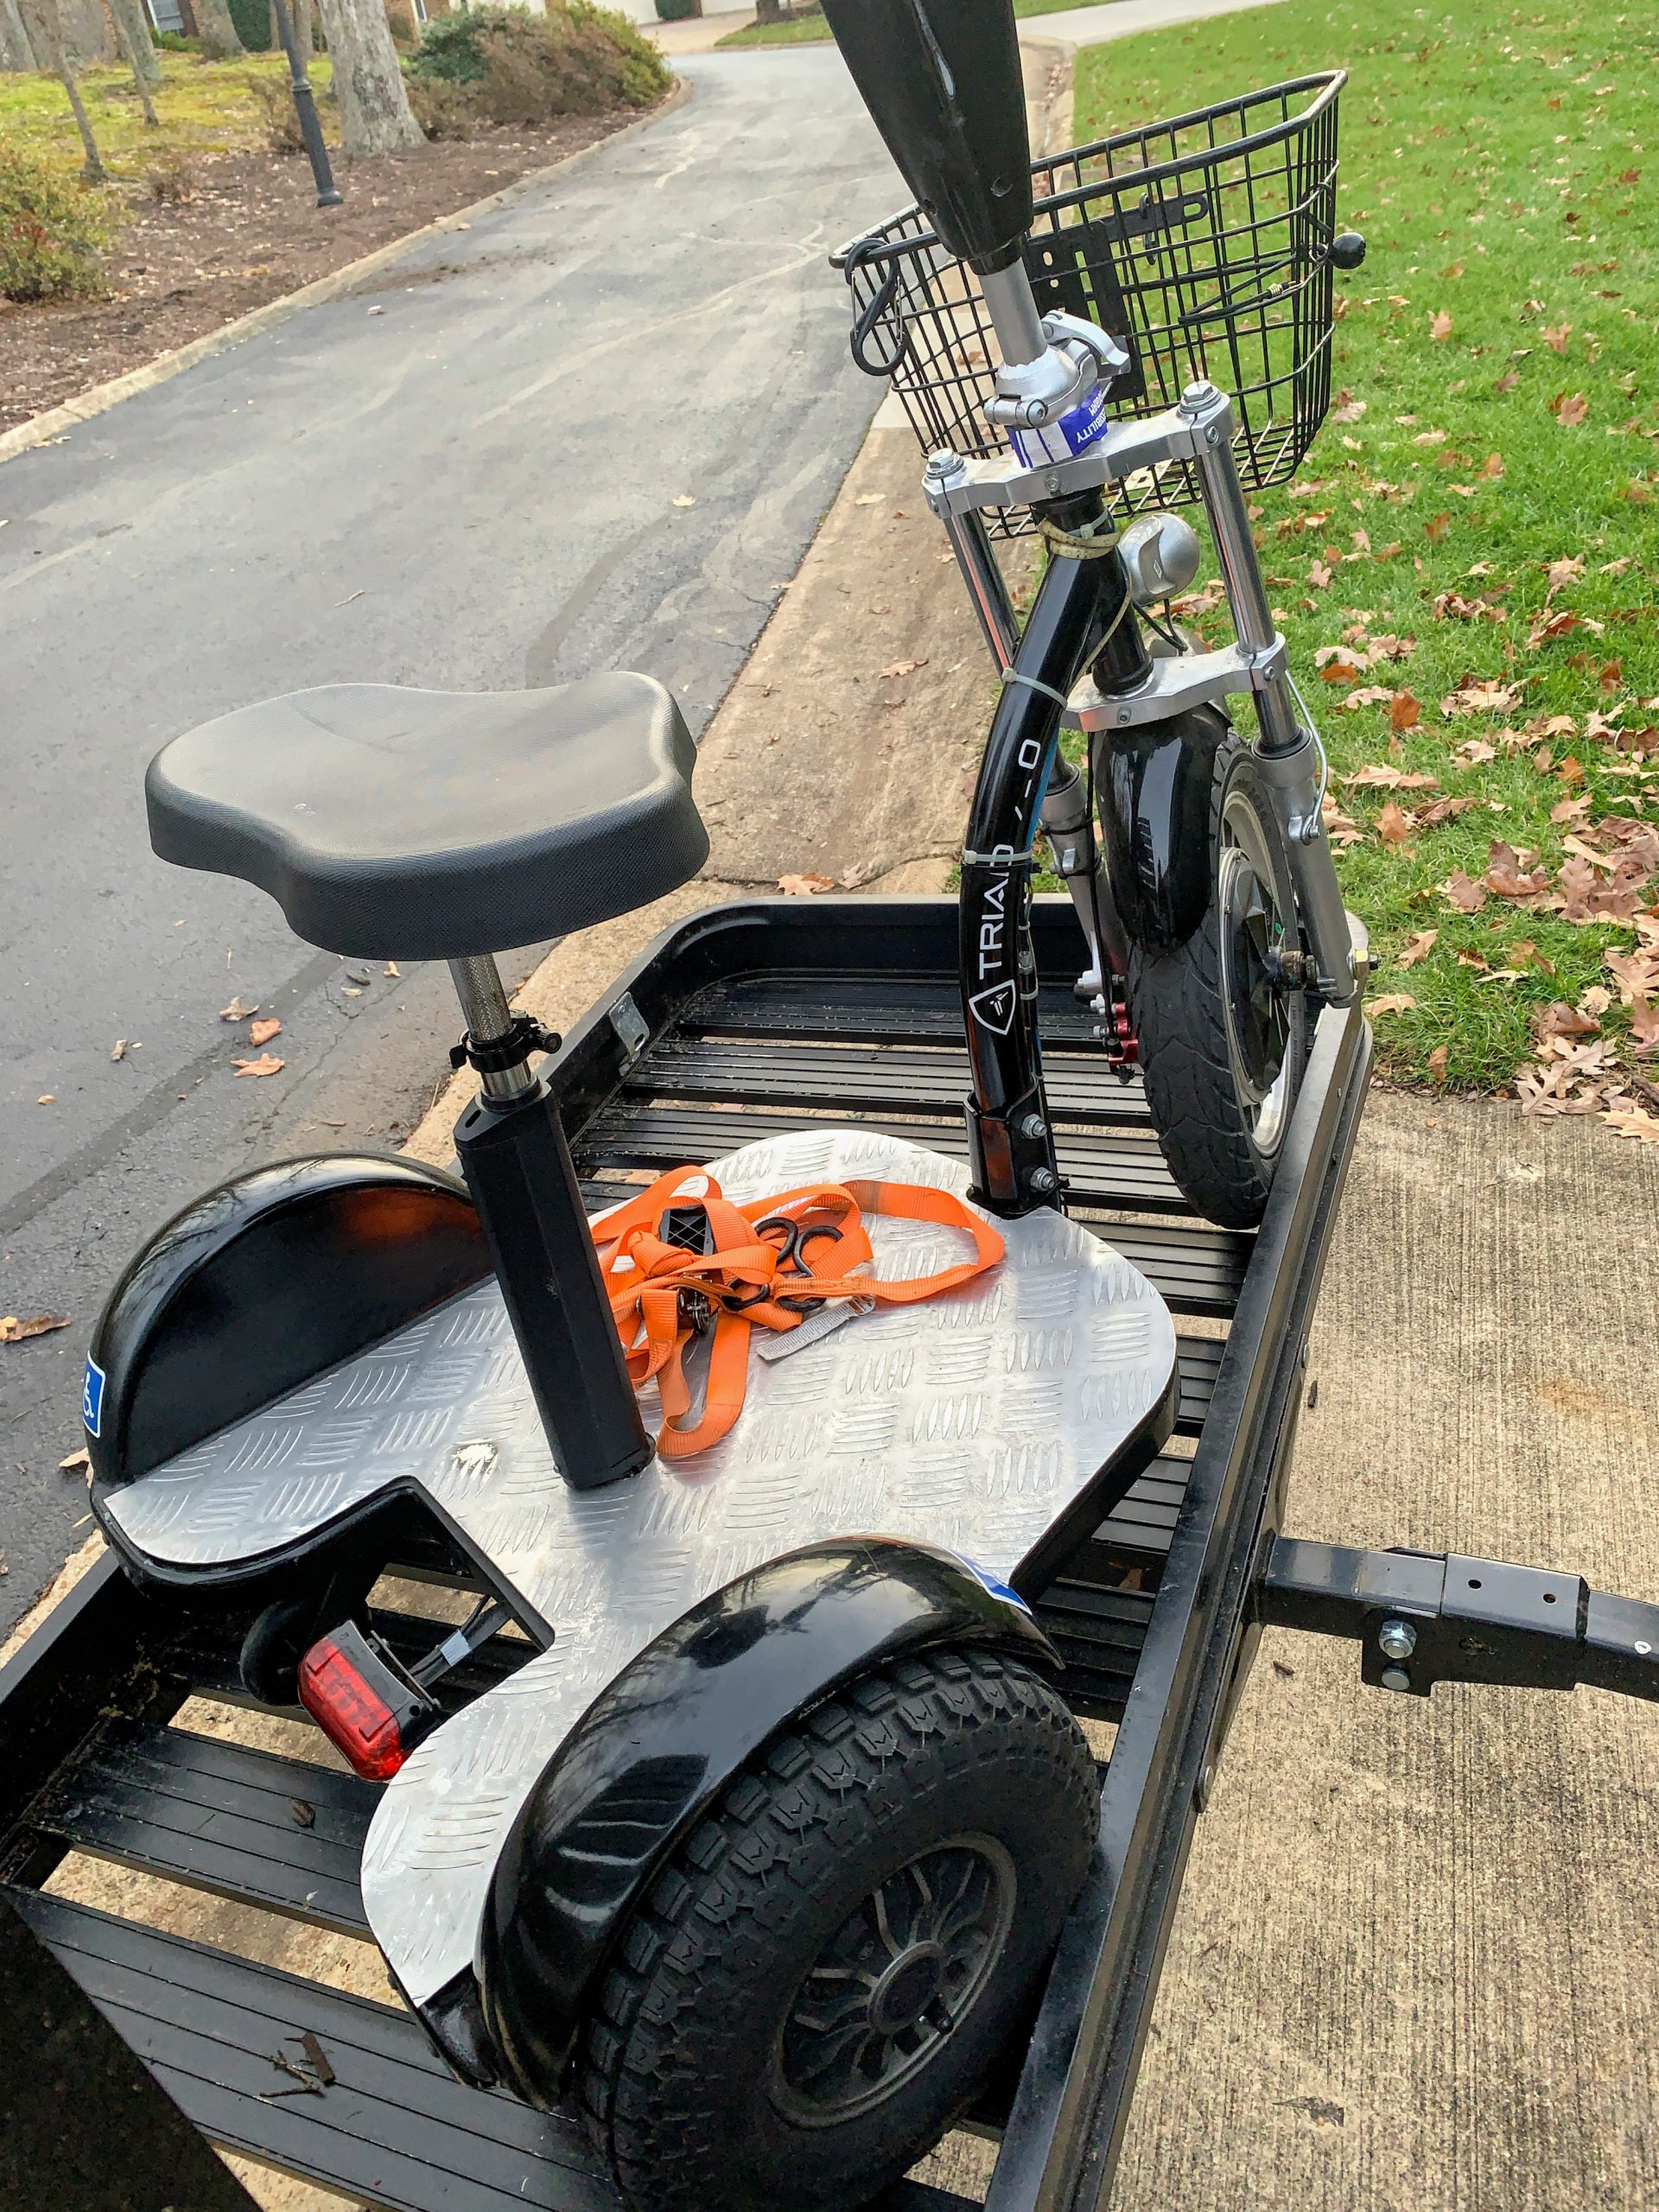 Triad on a Mobility Scooter Carrier ready to be secured for travel